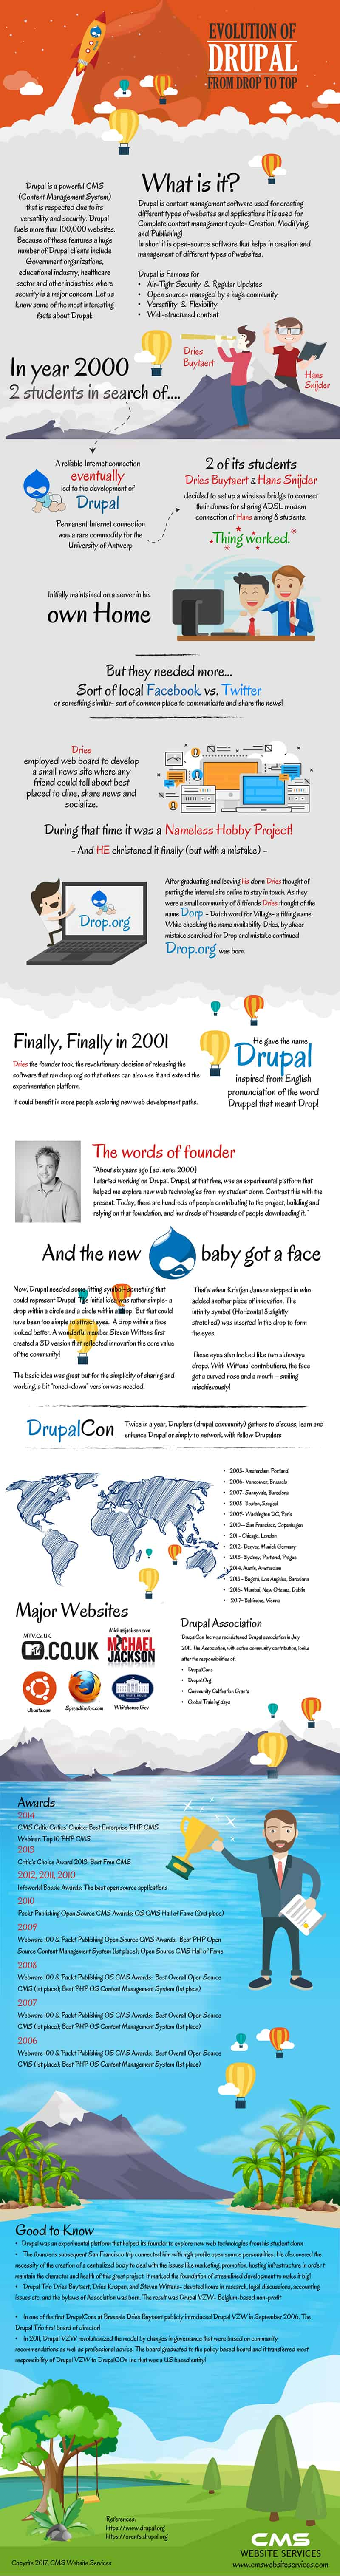 Infographic - Evolution of Drupal From Drop To Top